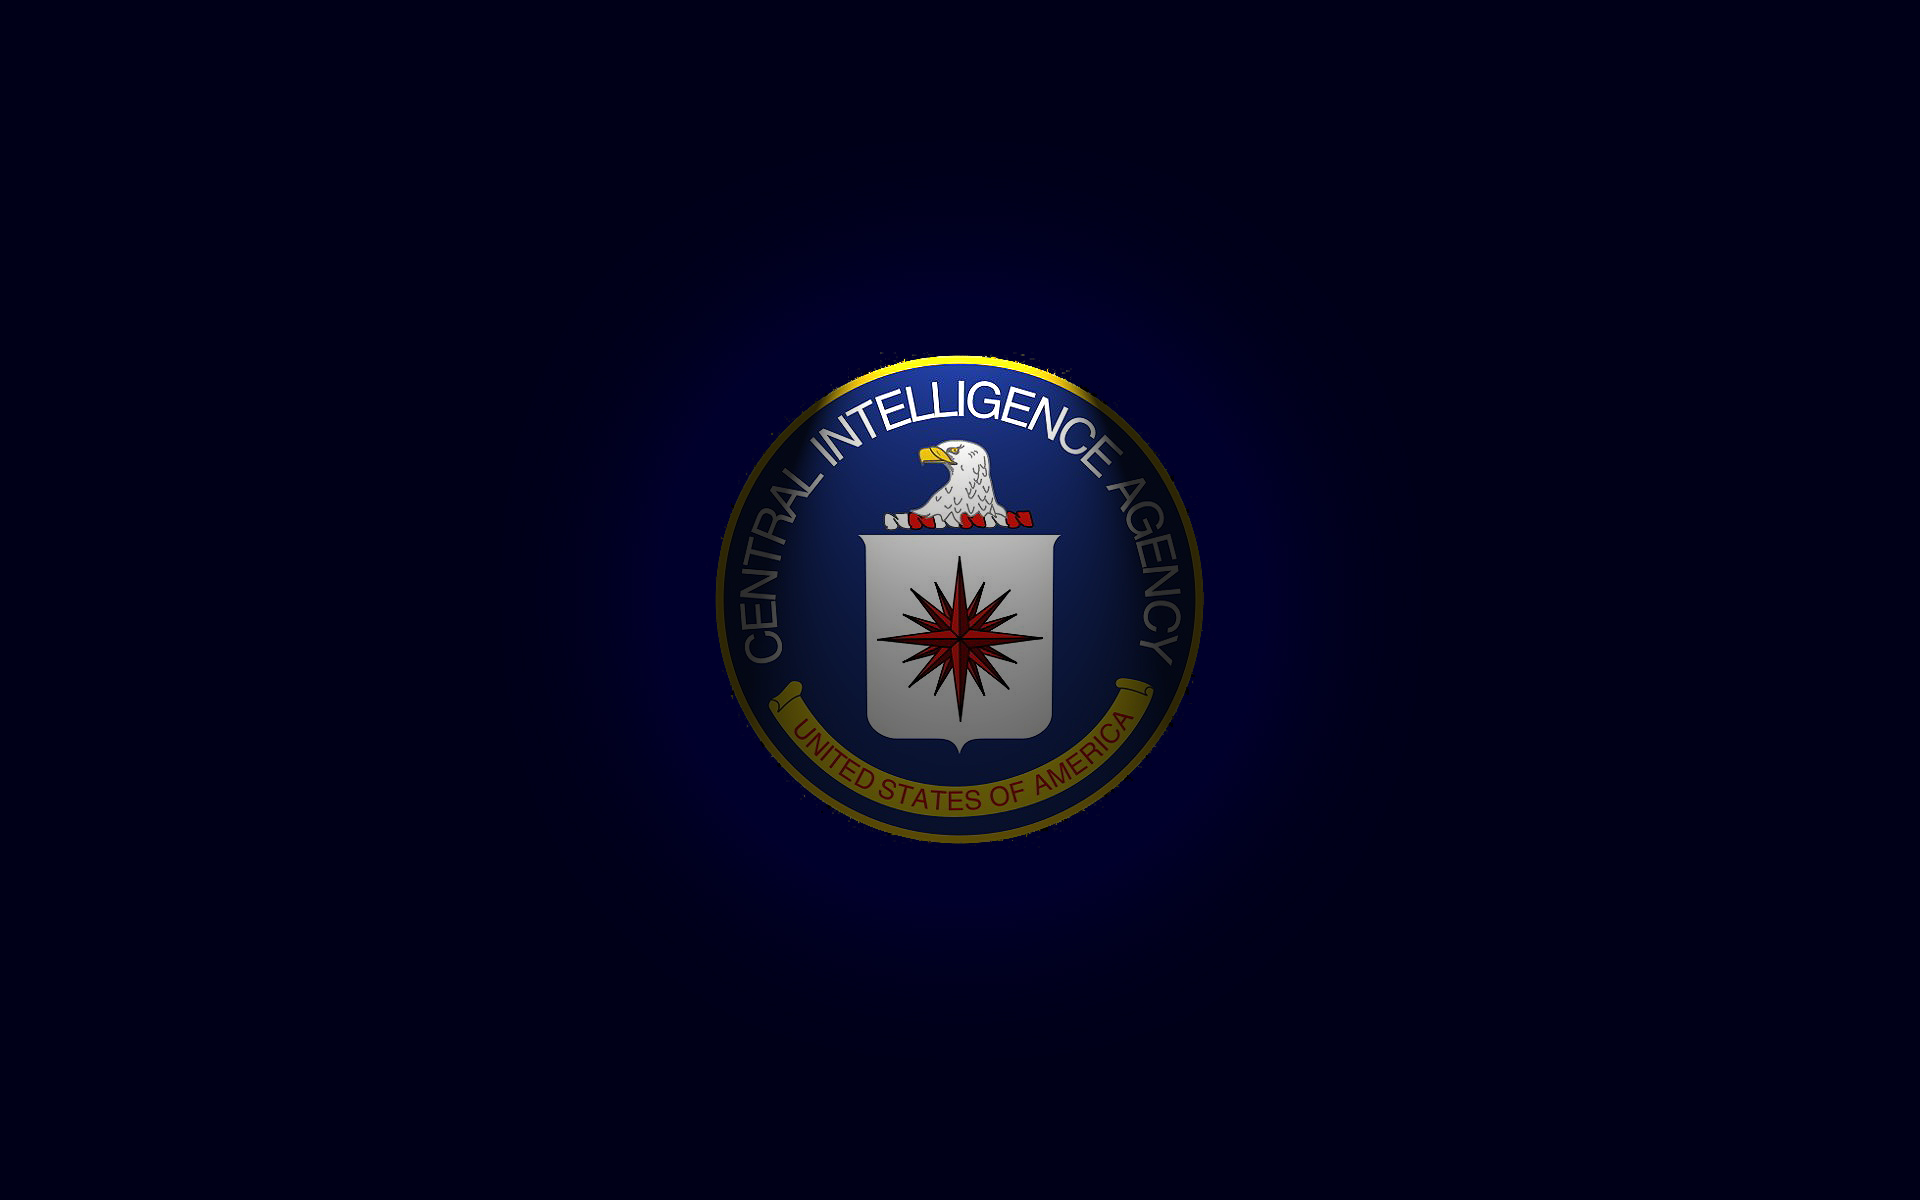 The United States Central Intelligence Agency